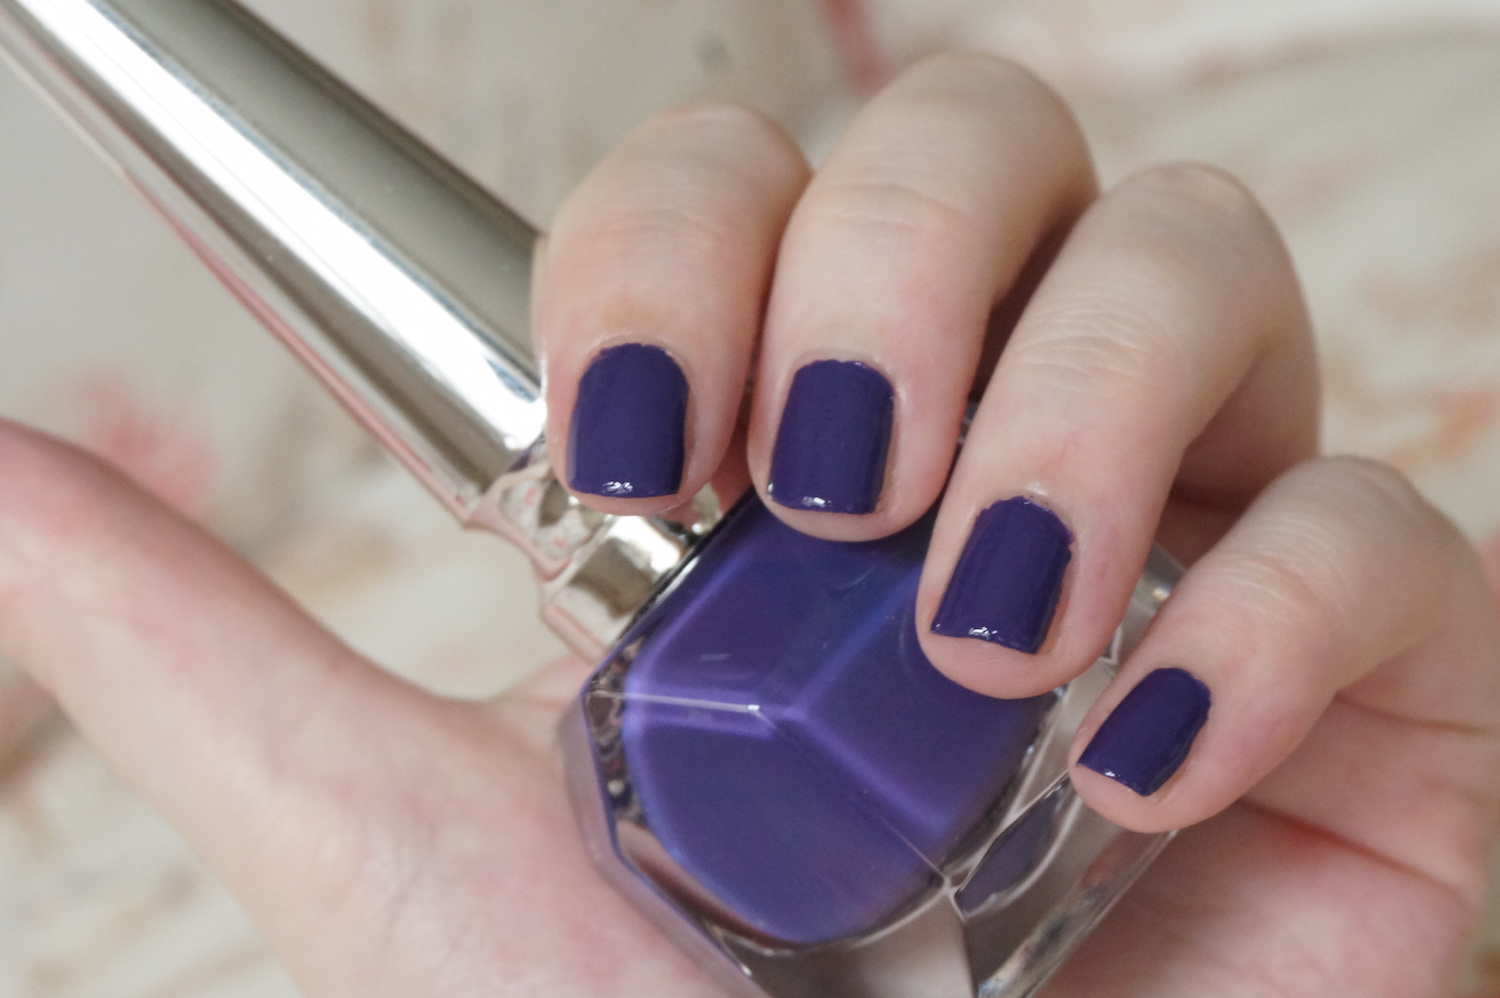 Christian Louboutin Lova nail polish review | Through The Looking Glass